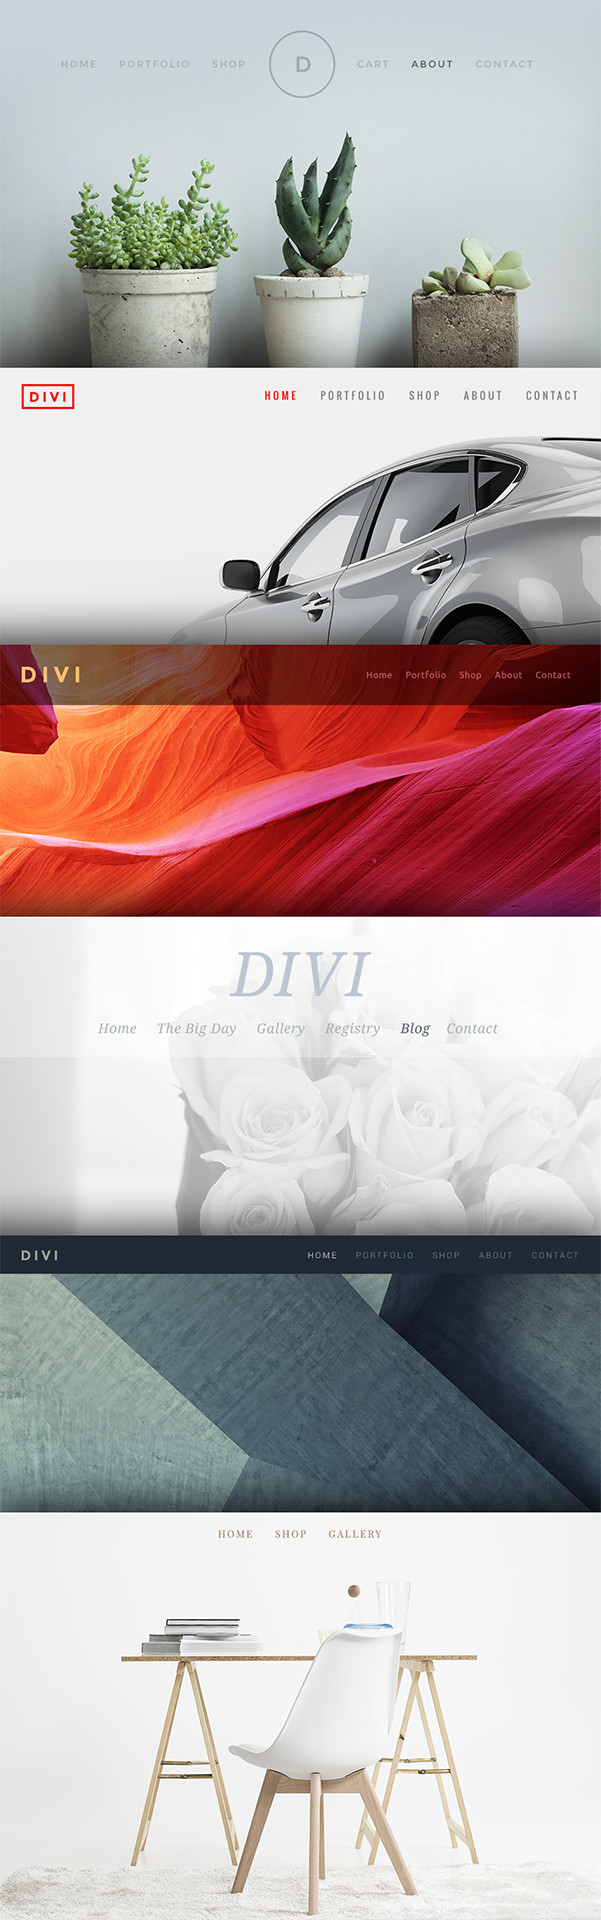 Divi WordPress theme Review Give Your Website a Unique Touch